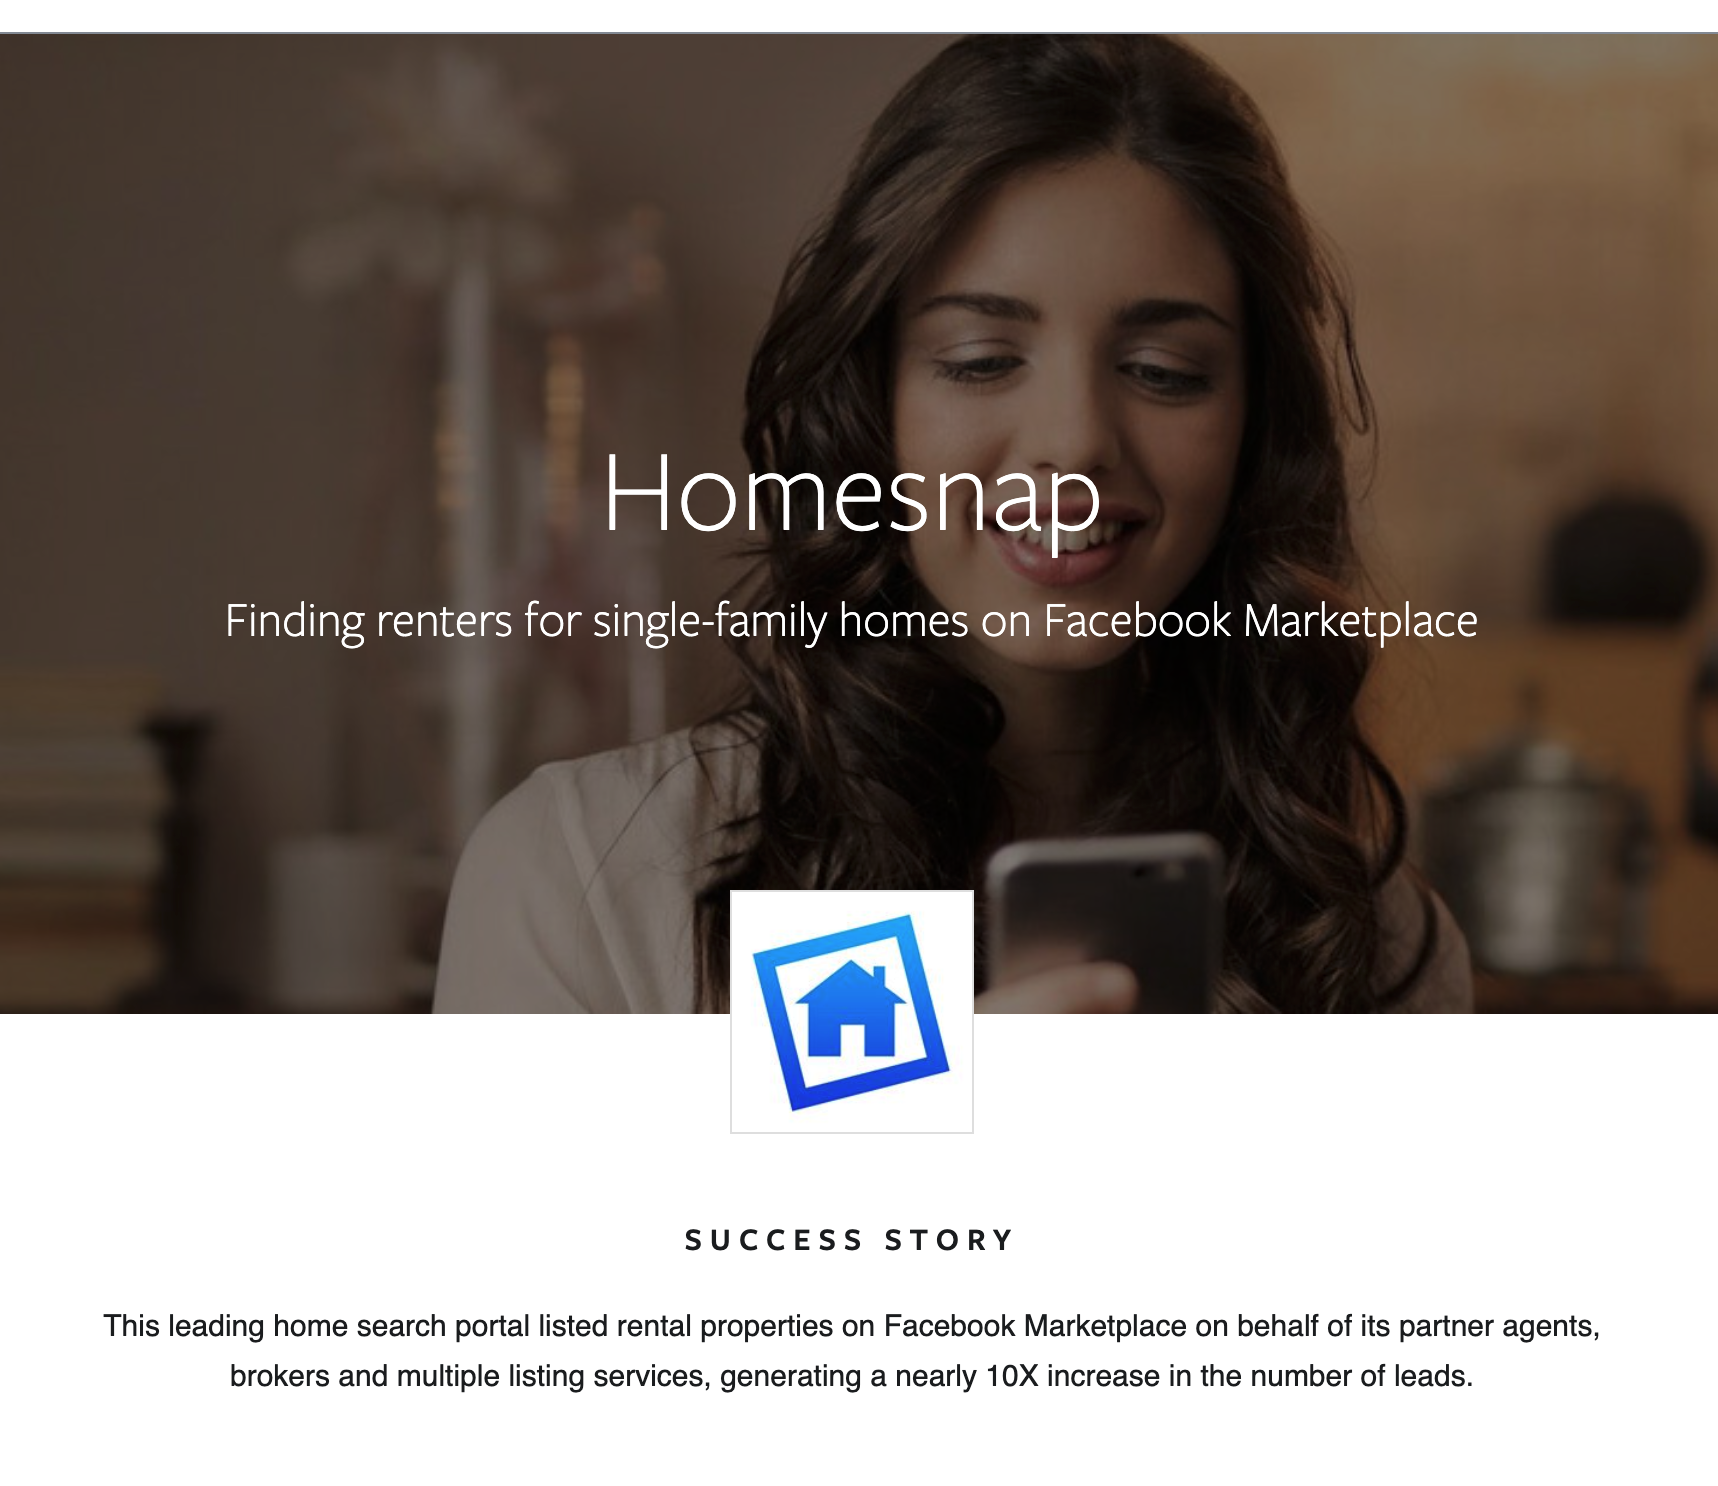 Facebook Homesnap Success Story